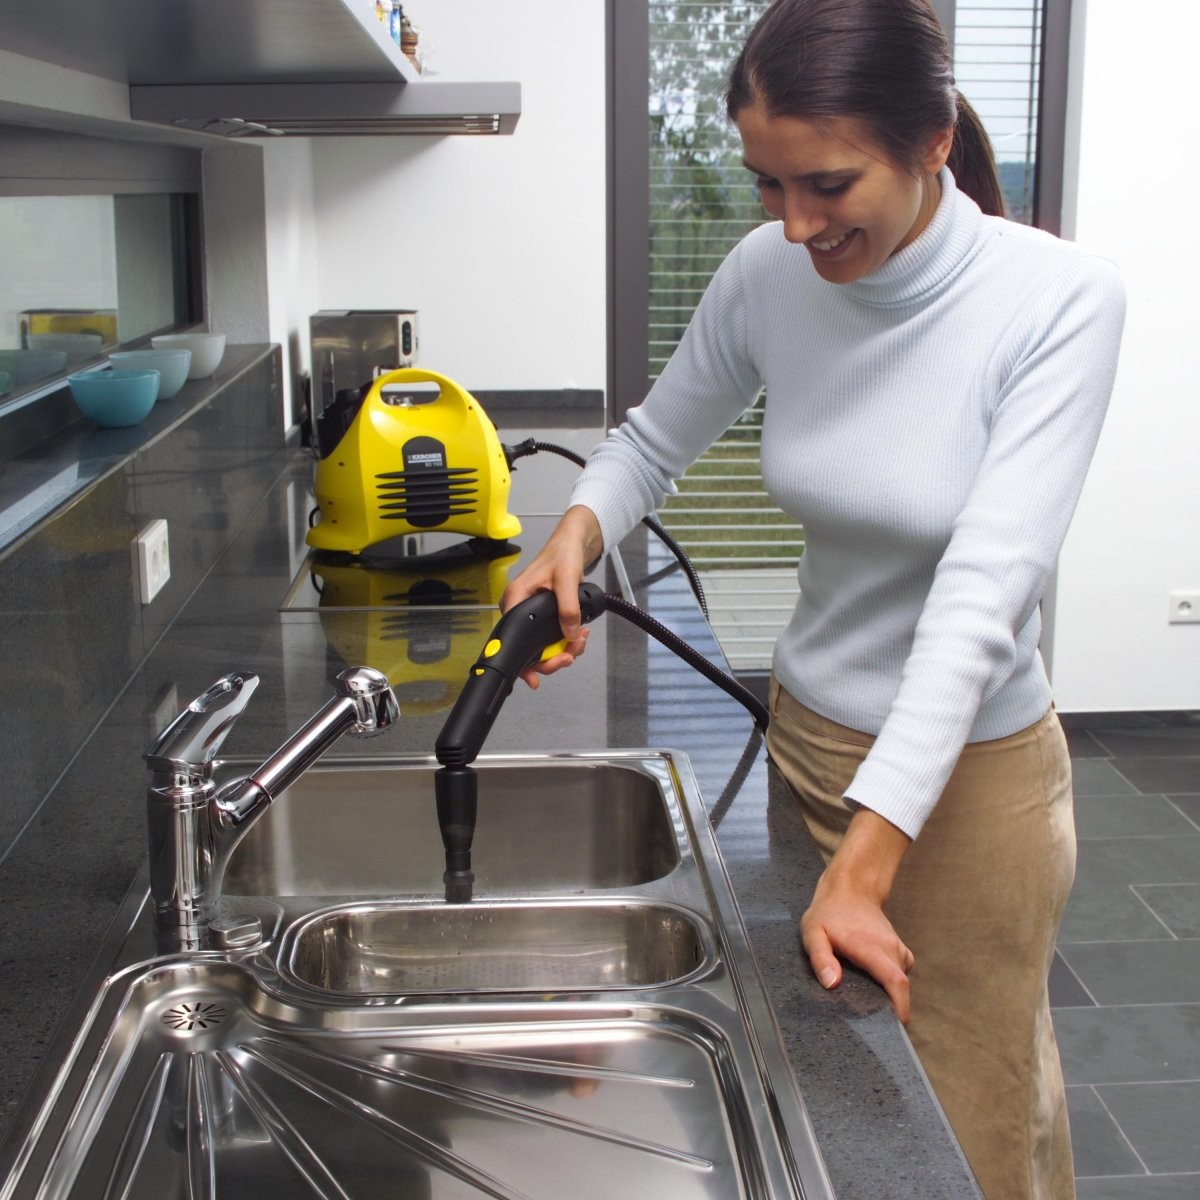 steam_turbo_brush_karcher_steam_cleaners_accessories_home_cleaning_2863159_3